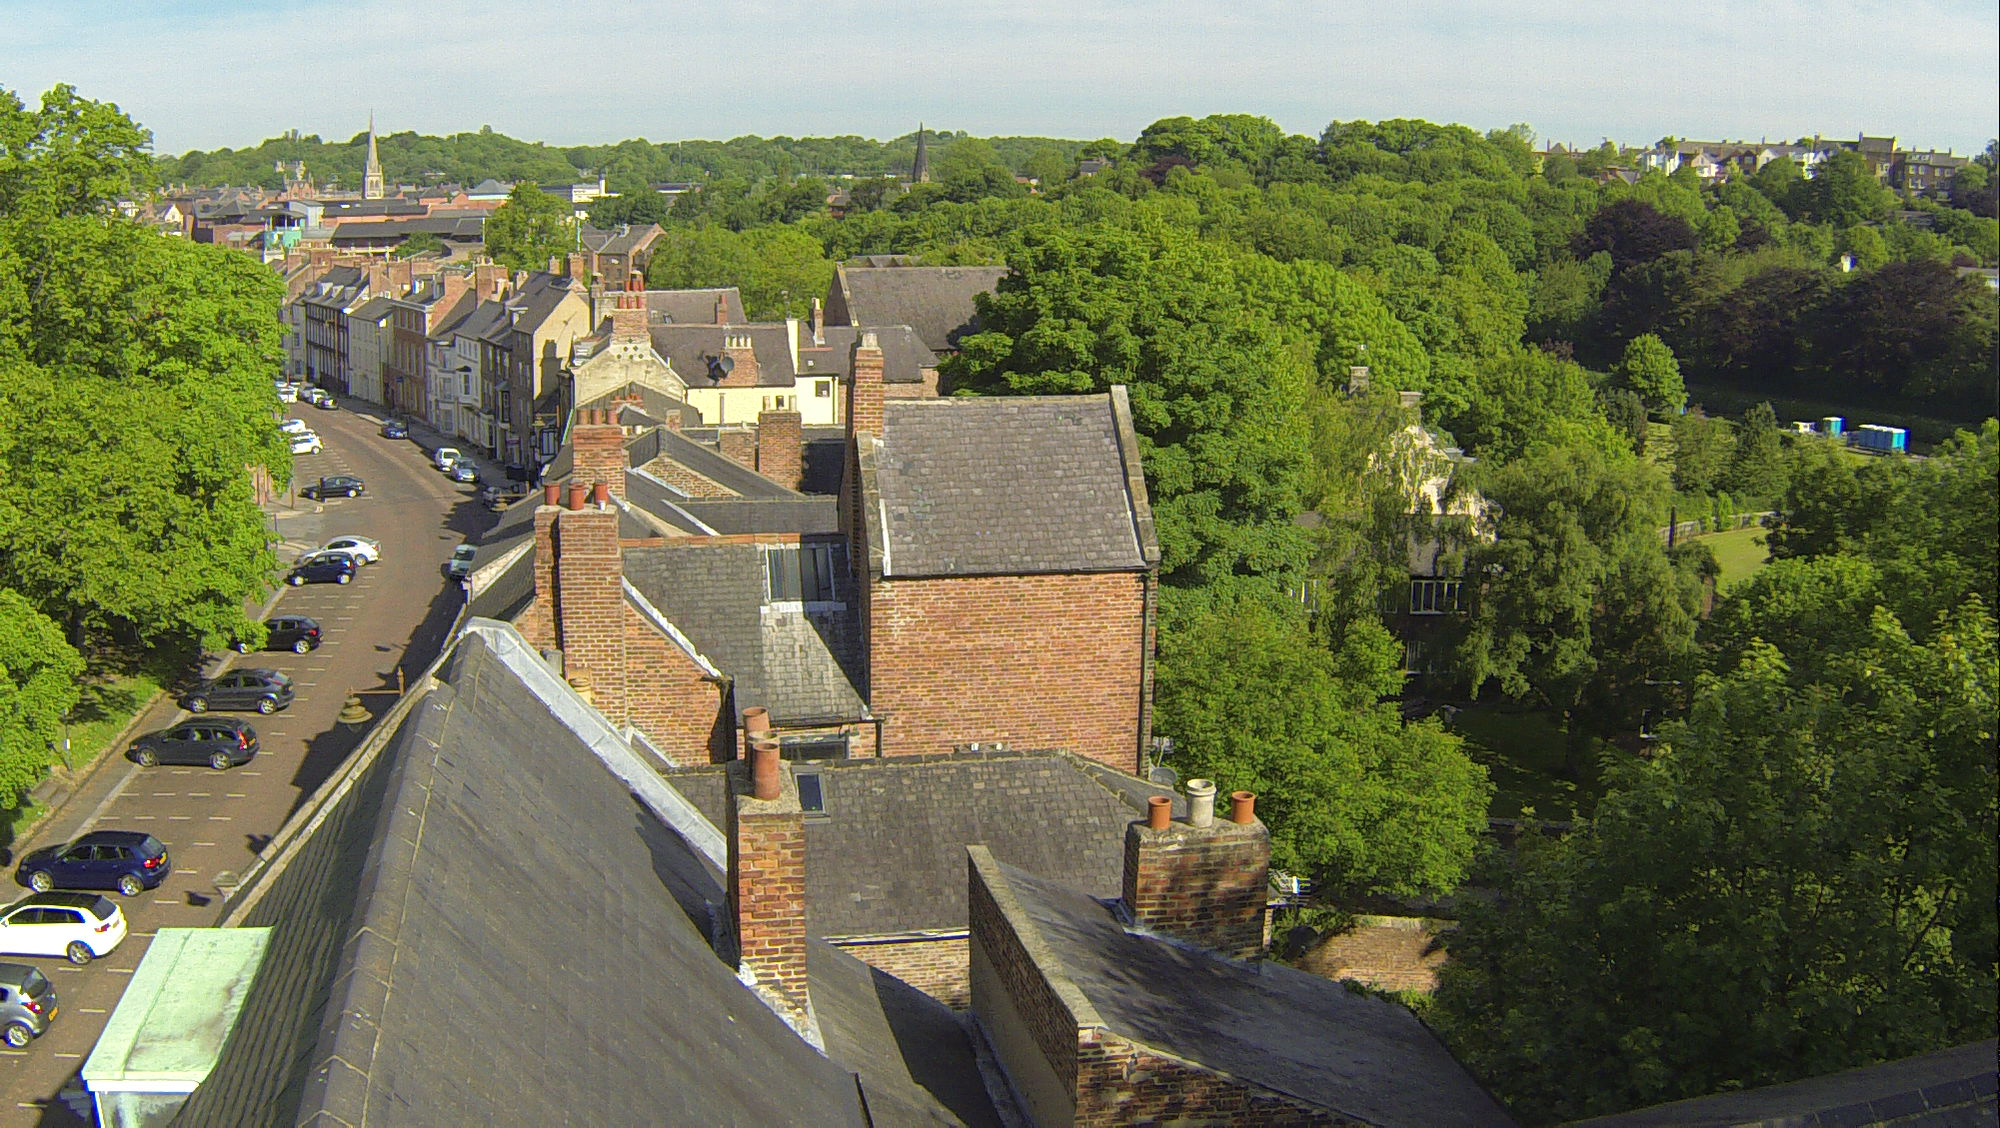 Rooftops and chimneys - Survey Drones